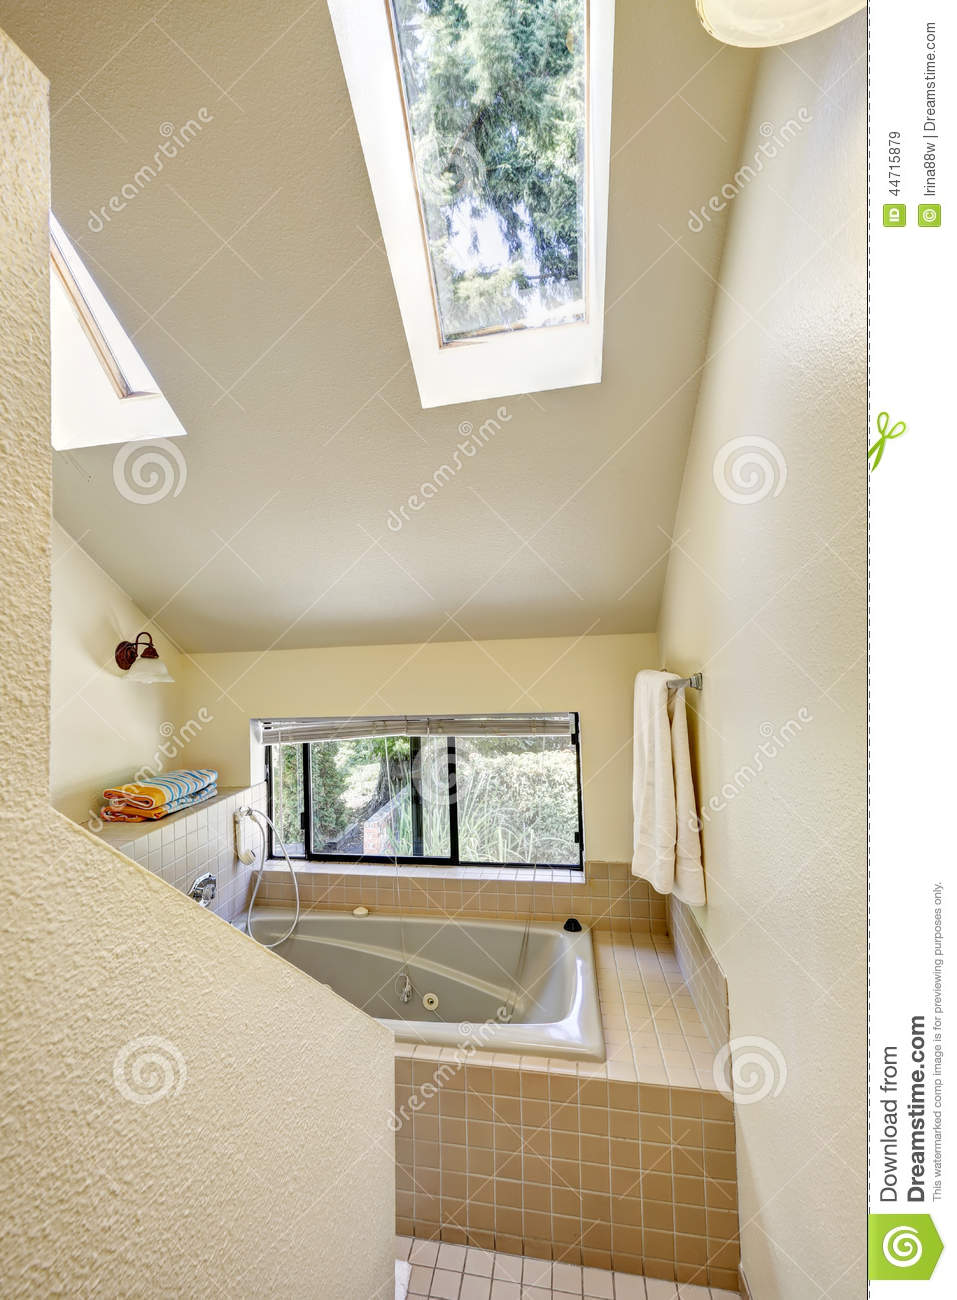 Bathroom With High Vaulted Ceiling And Skylight Stock Photo - Image: 44715879